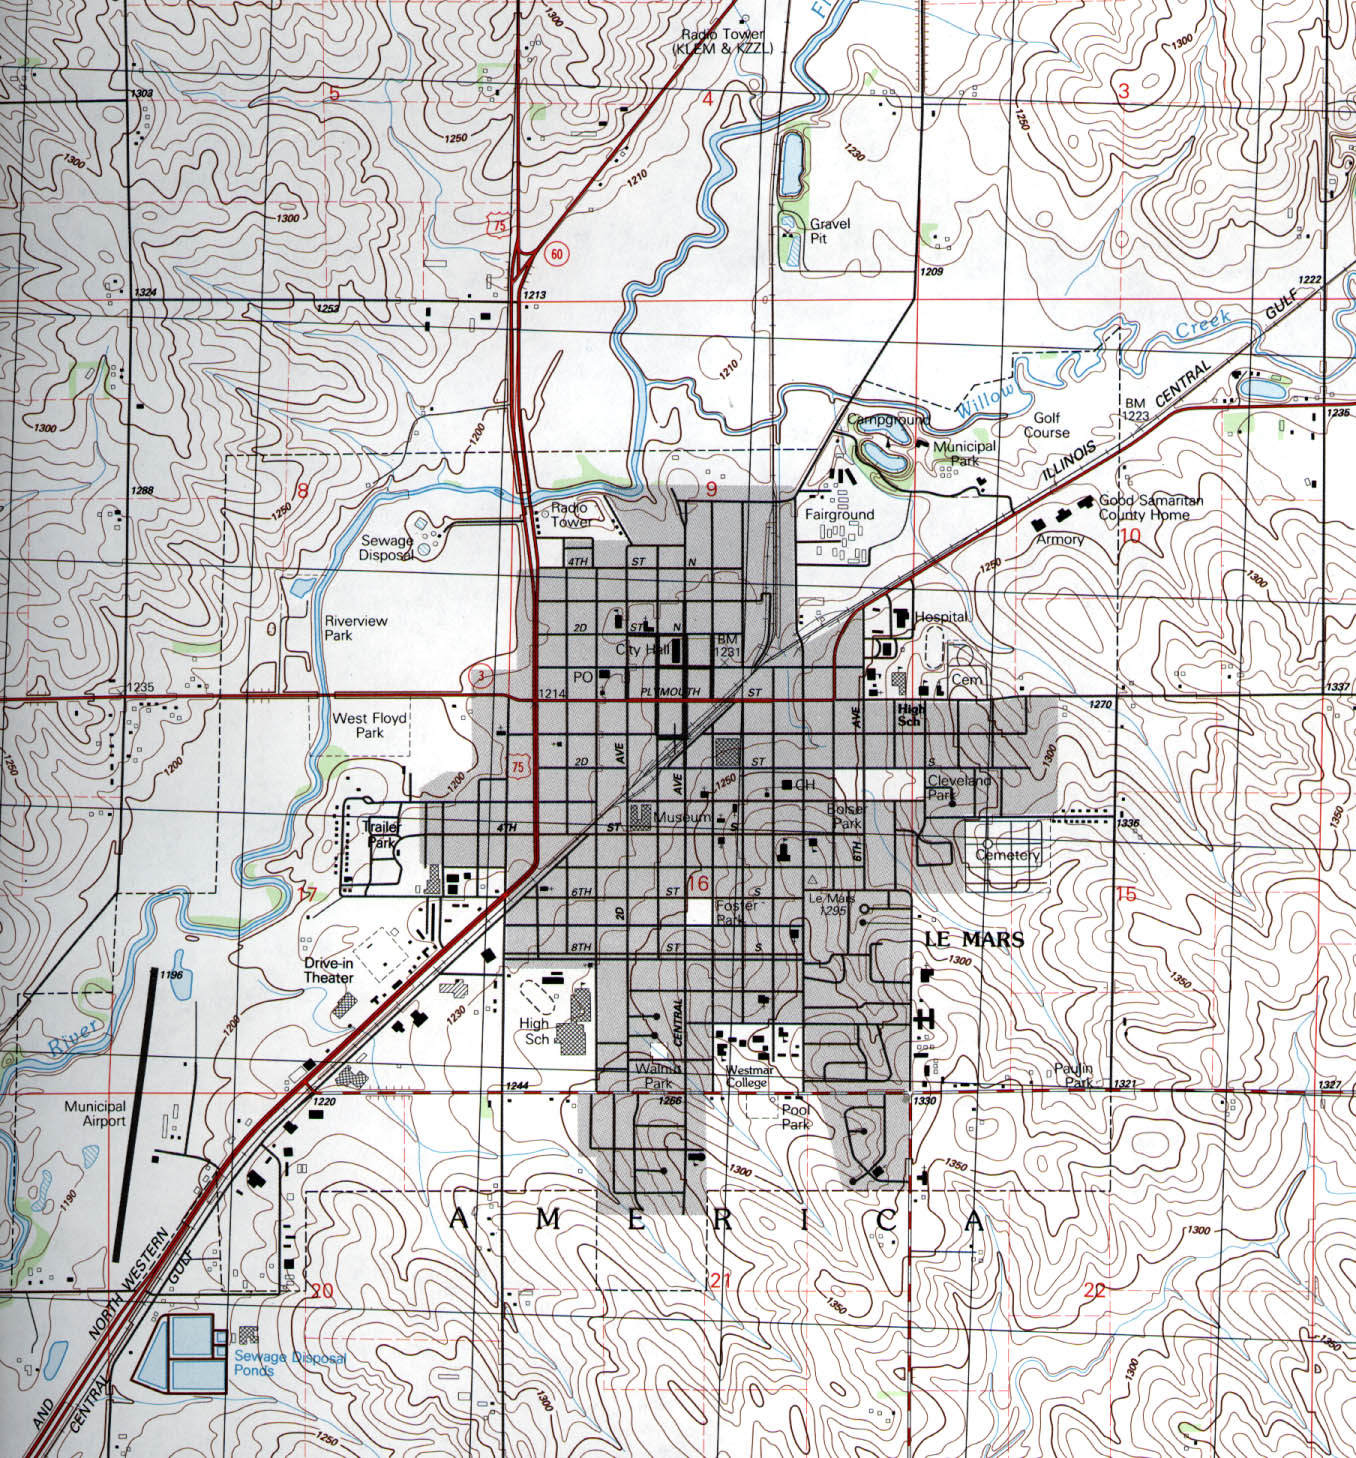 Le Mars Topographic City Map, Iowa, United States